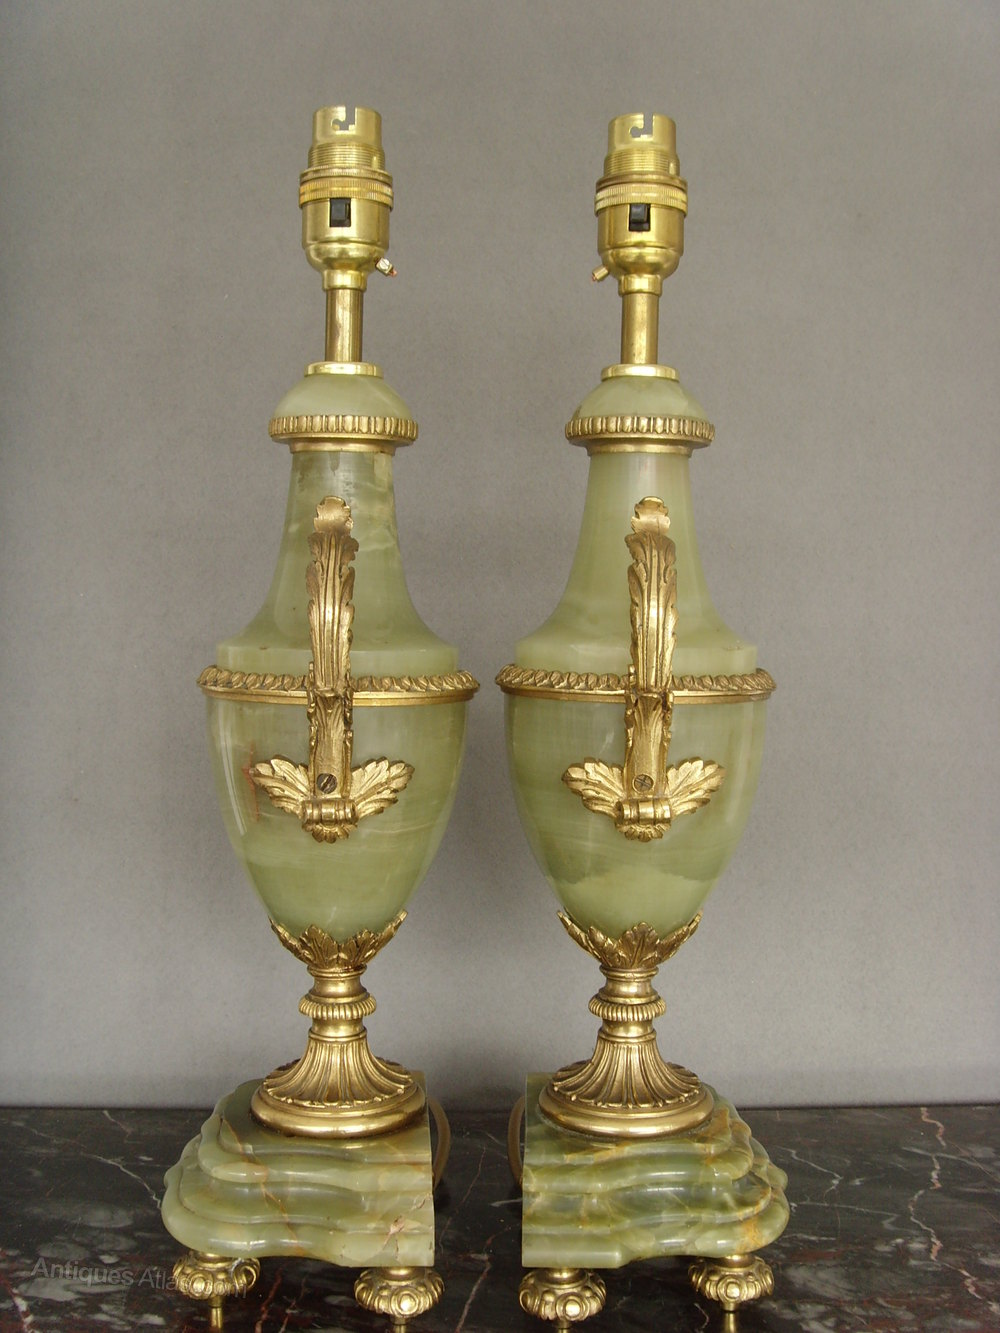 Antiques atlas pair of green onyx and ormolu table lamps pair of green onyx and ormolu table lamps antique lighting table lamps mozeypictures Images